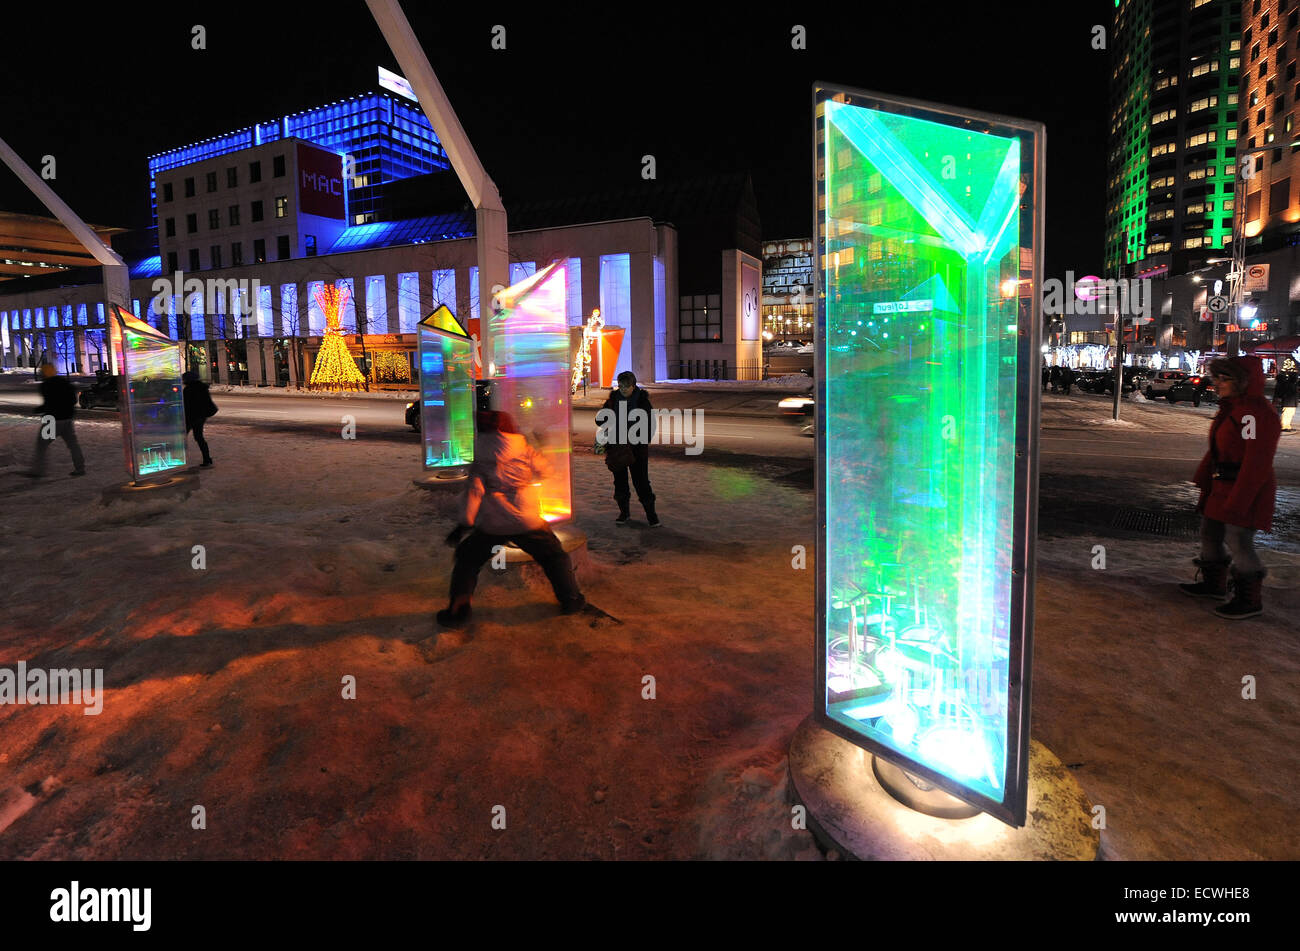 Montreal, Canada. 19th Dec, 2014. Visitors enjoy the Prisms Gallery in downtown Montreal, Canada, Dec. 19, 2014. - Stock Image